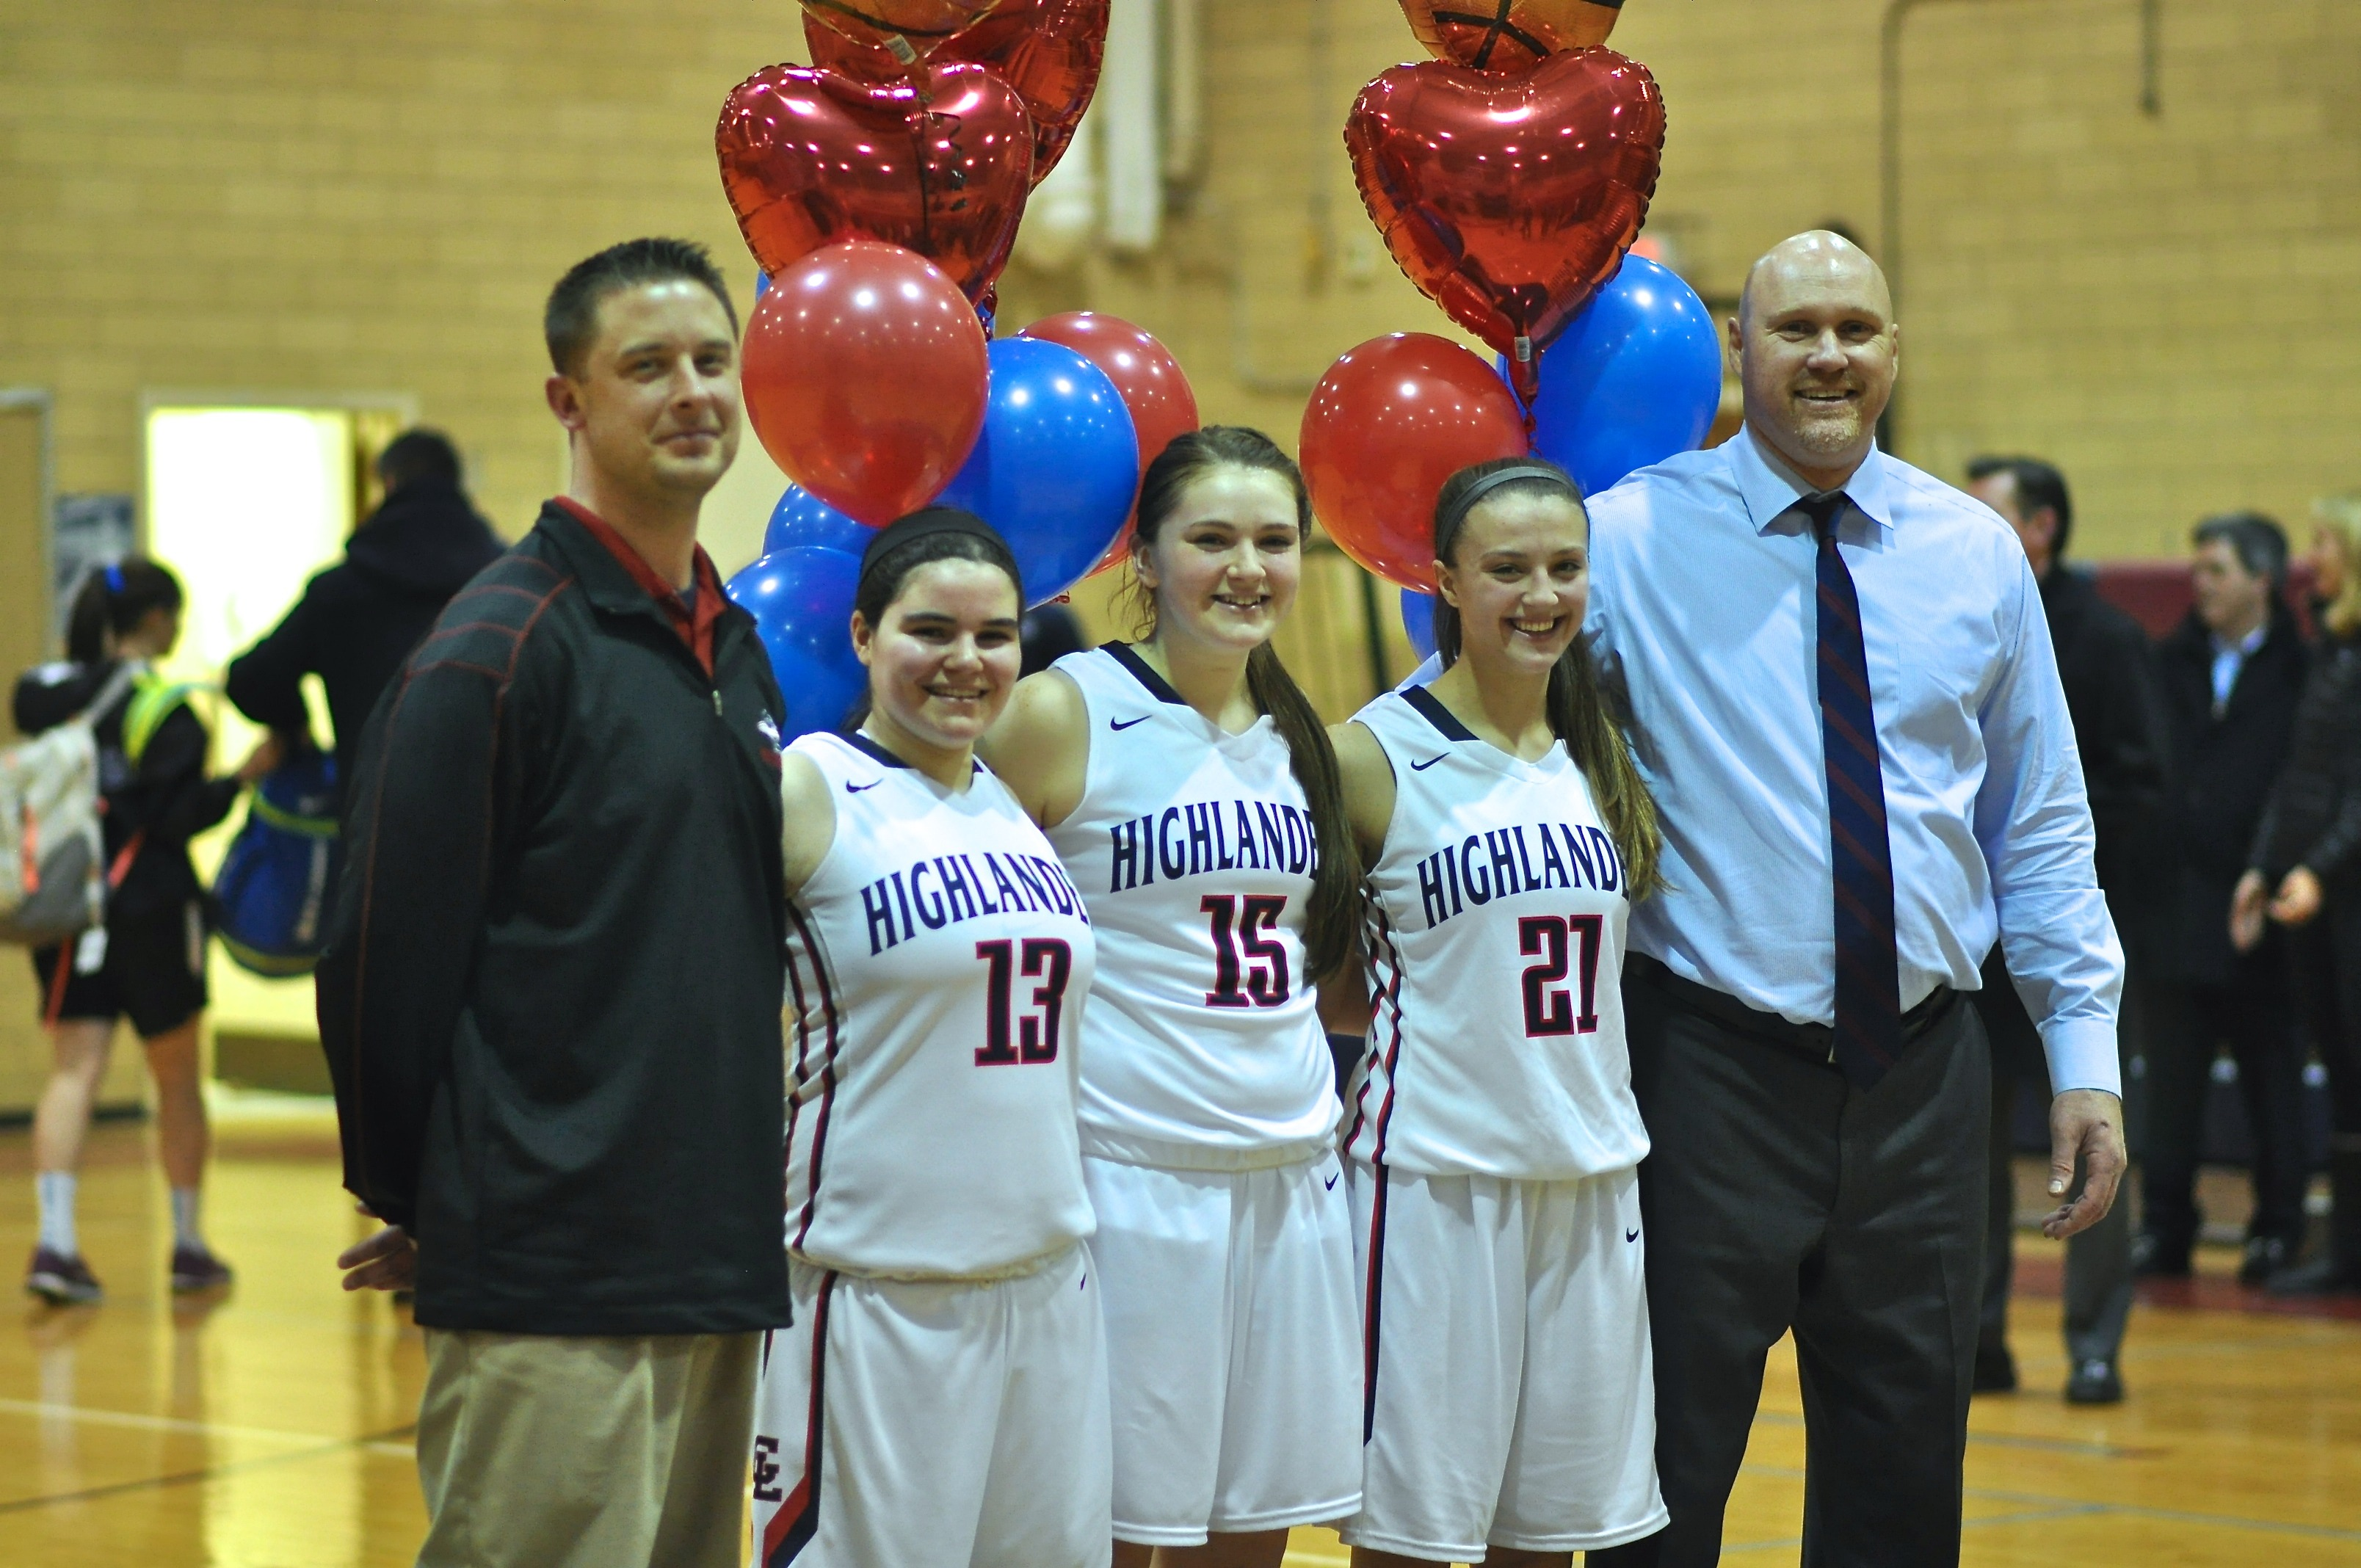 956ce80ca2709ada9979_Assistant_Coach_Rob_Ritter__Hayley_Berliner__Courtney_Osieja___Sara_Dilly_and_Head_Coach_Vin_Gulbin.JPG